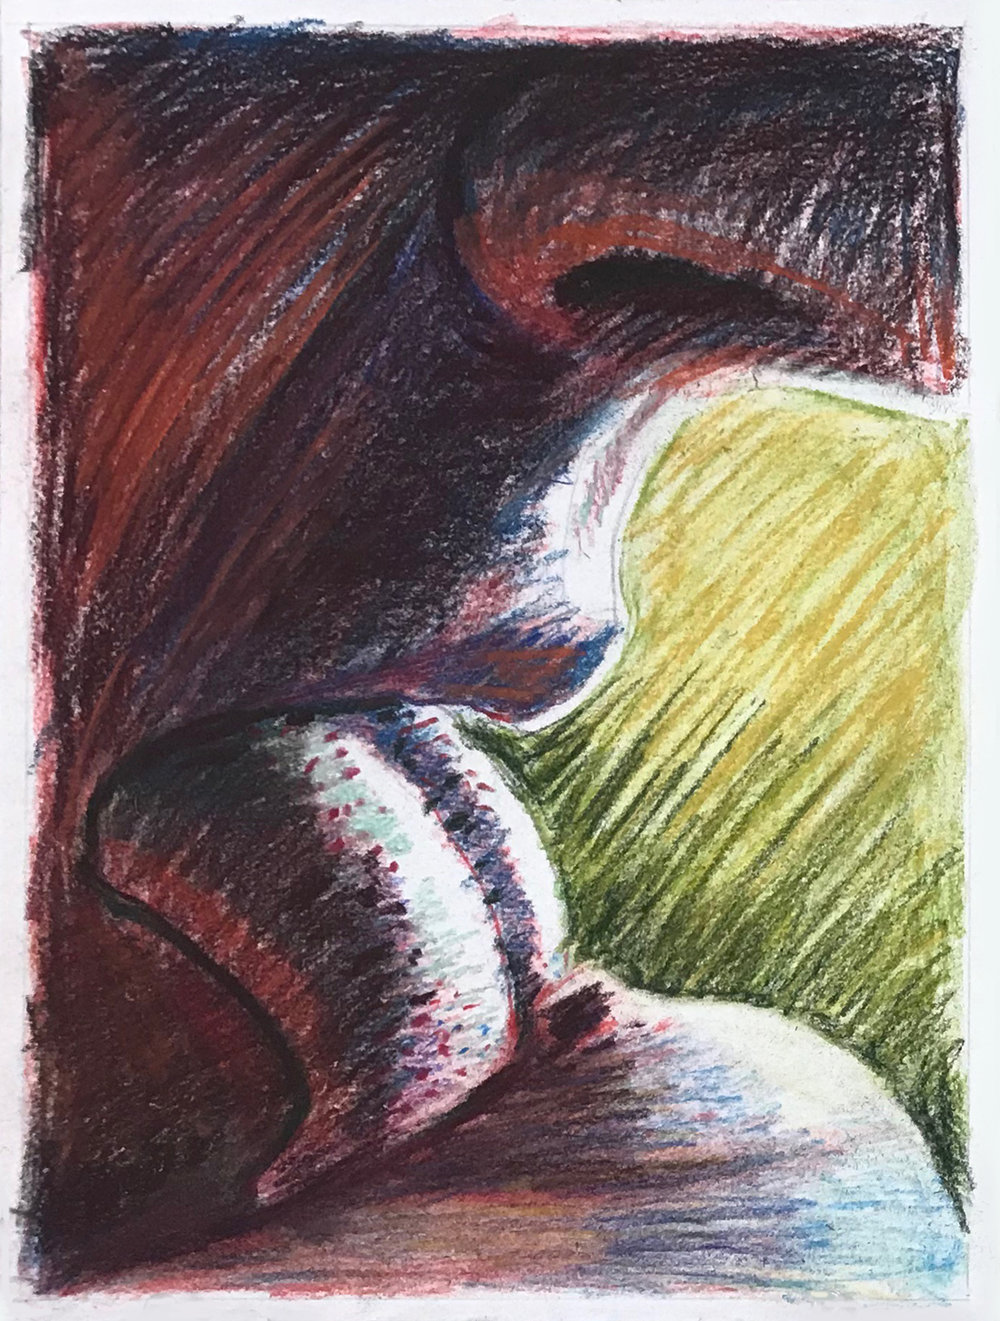 Lick  2019 | conté crayon and pastel on paper | 9 X 12 inches